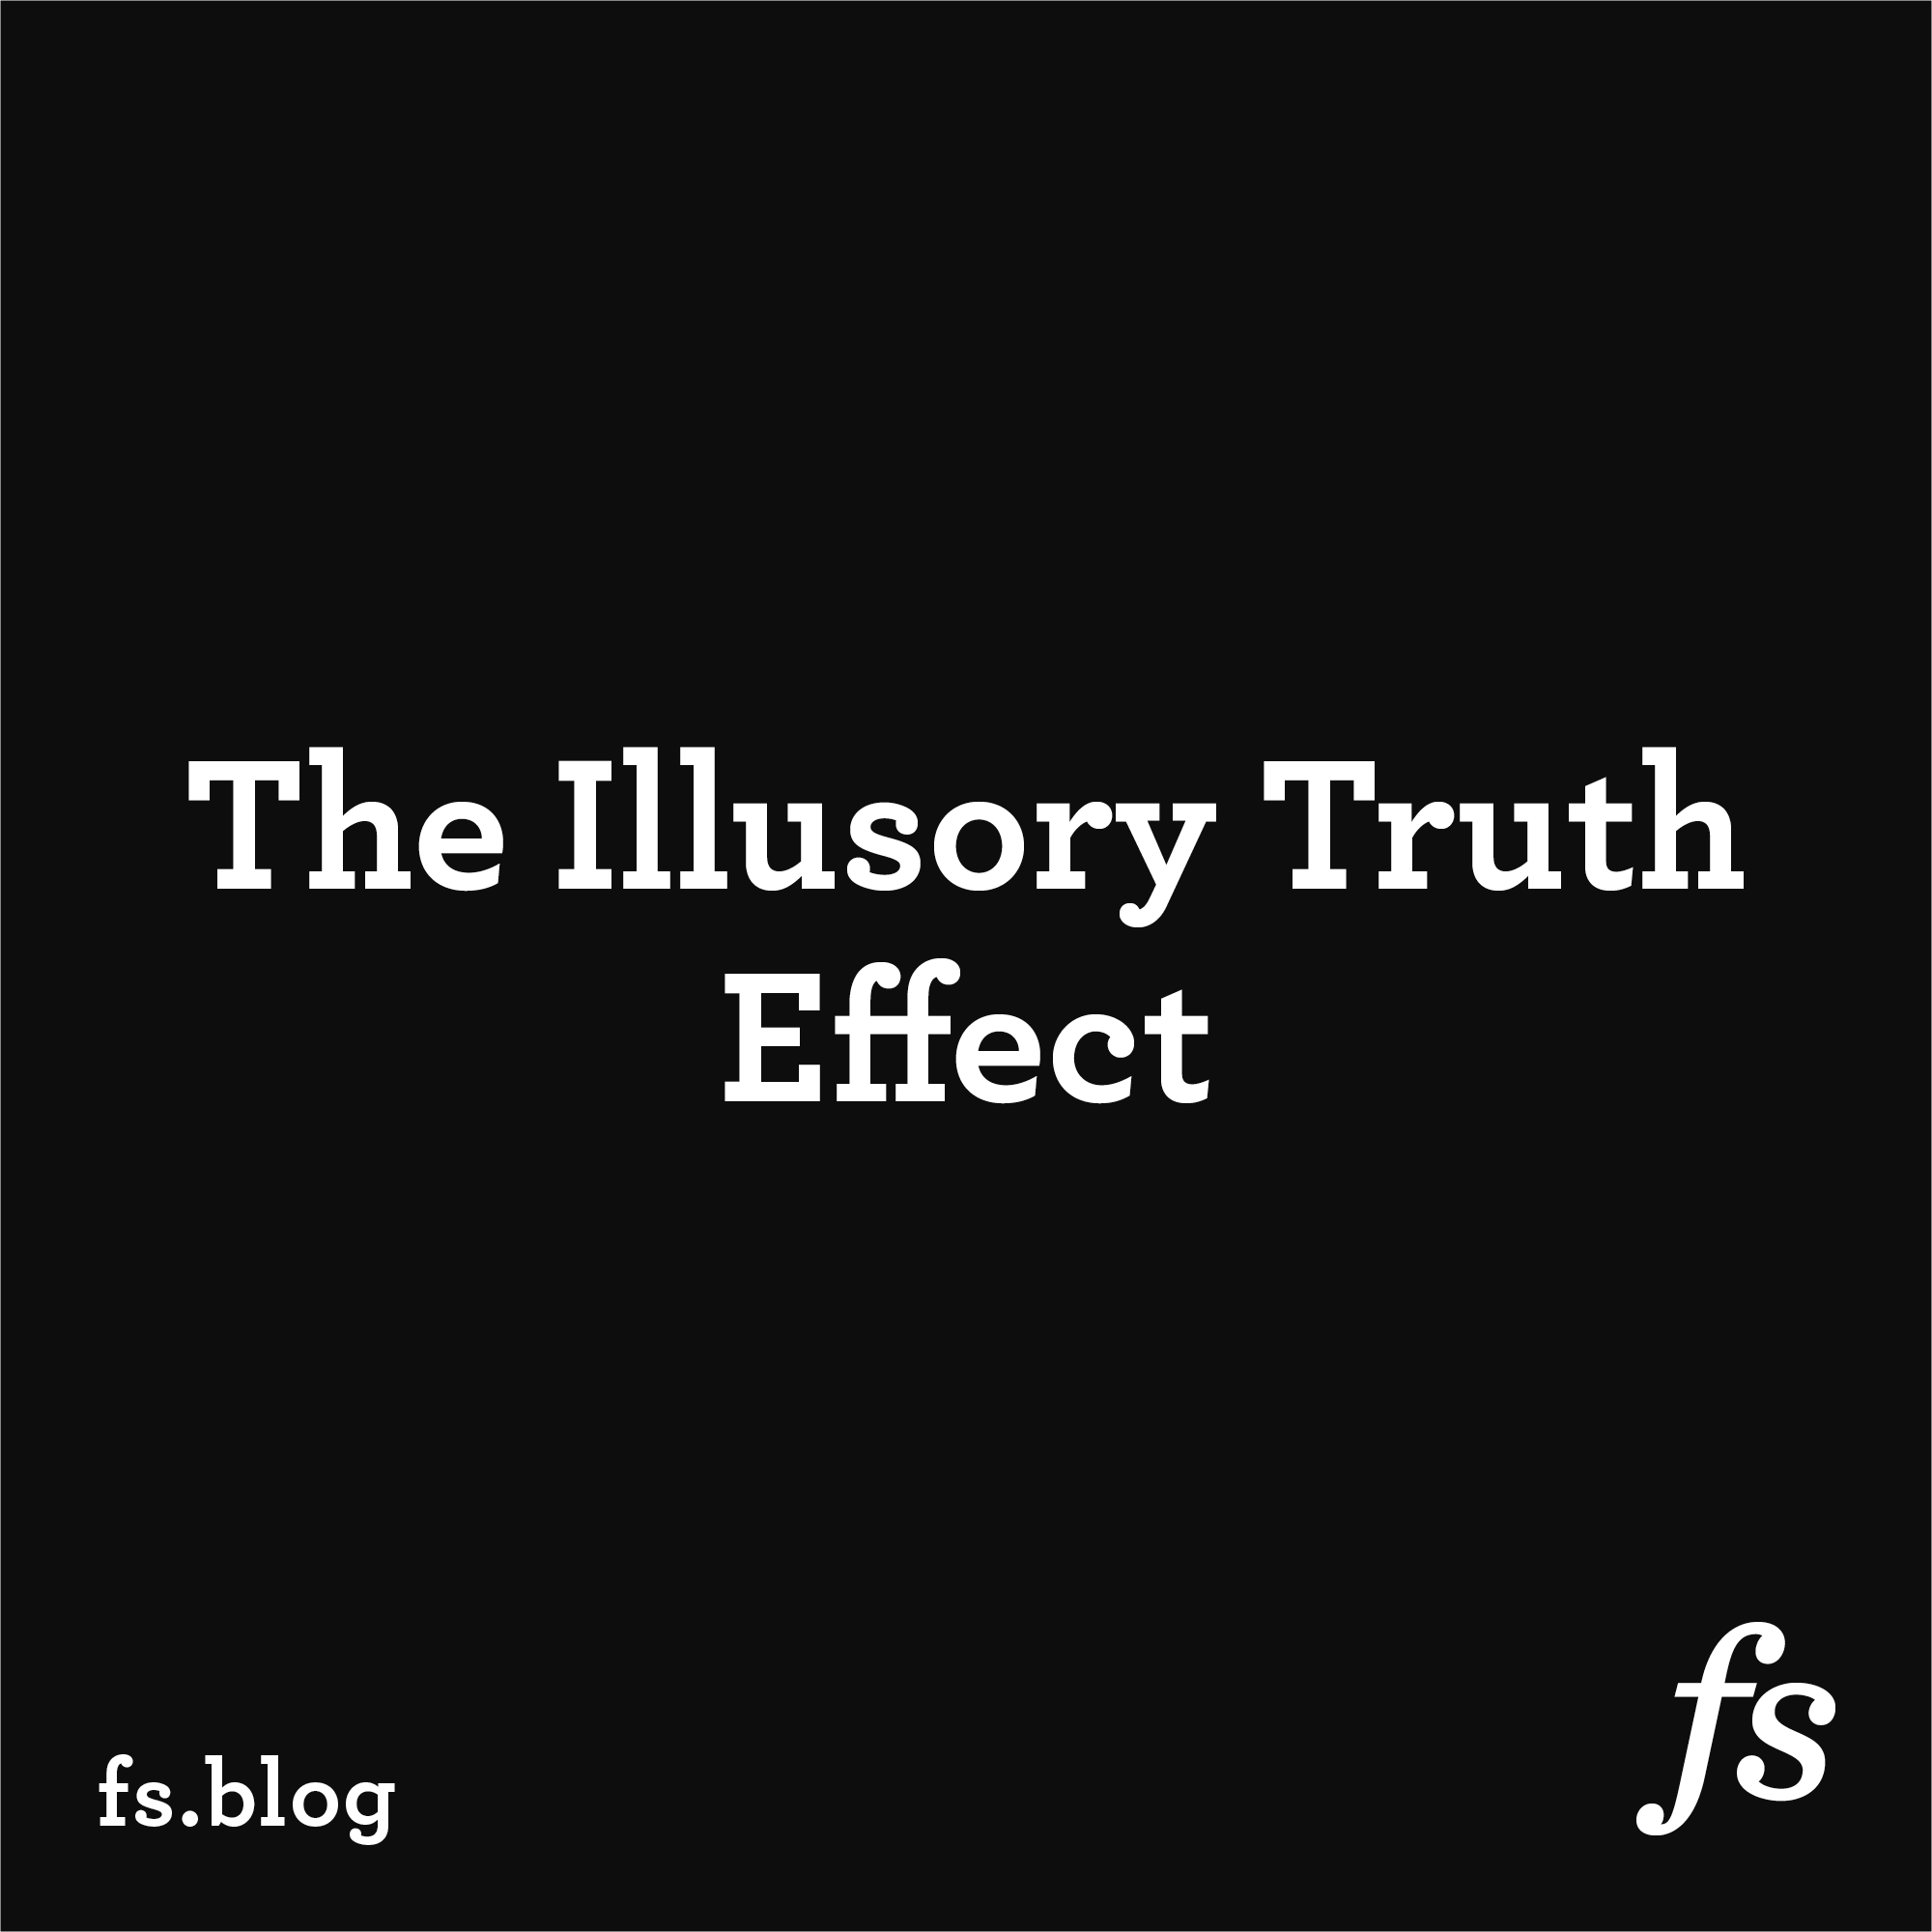 The Illusory Truth Effect